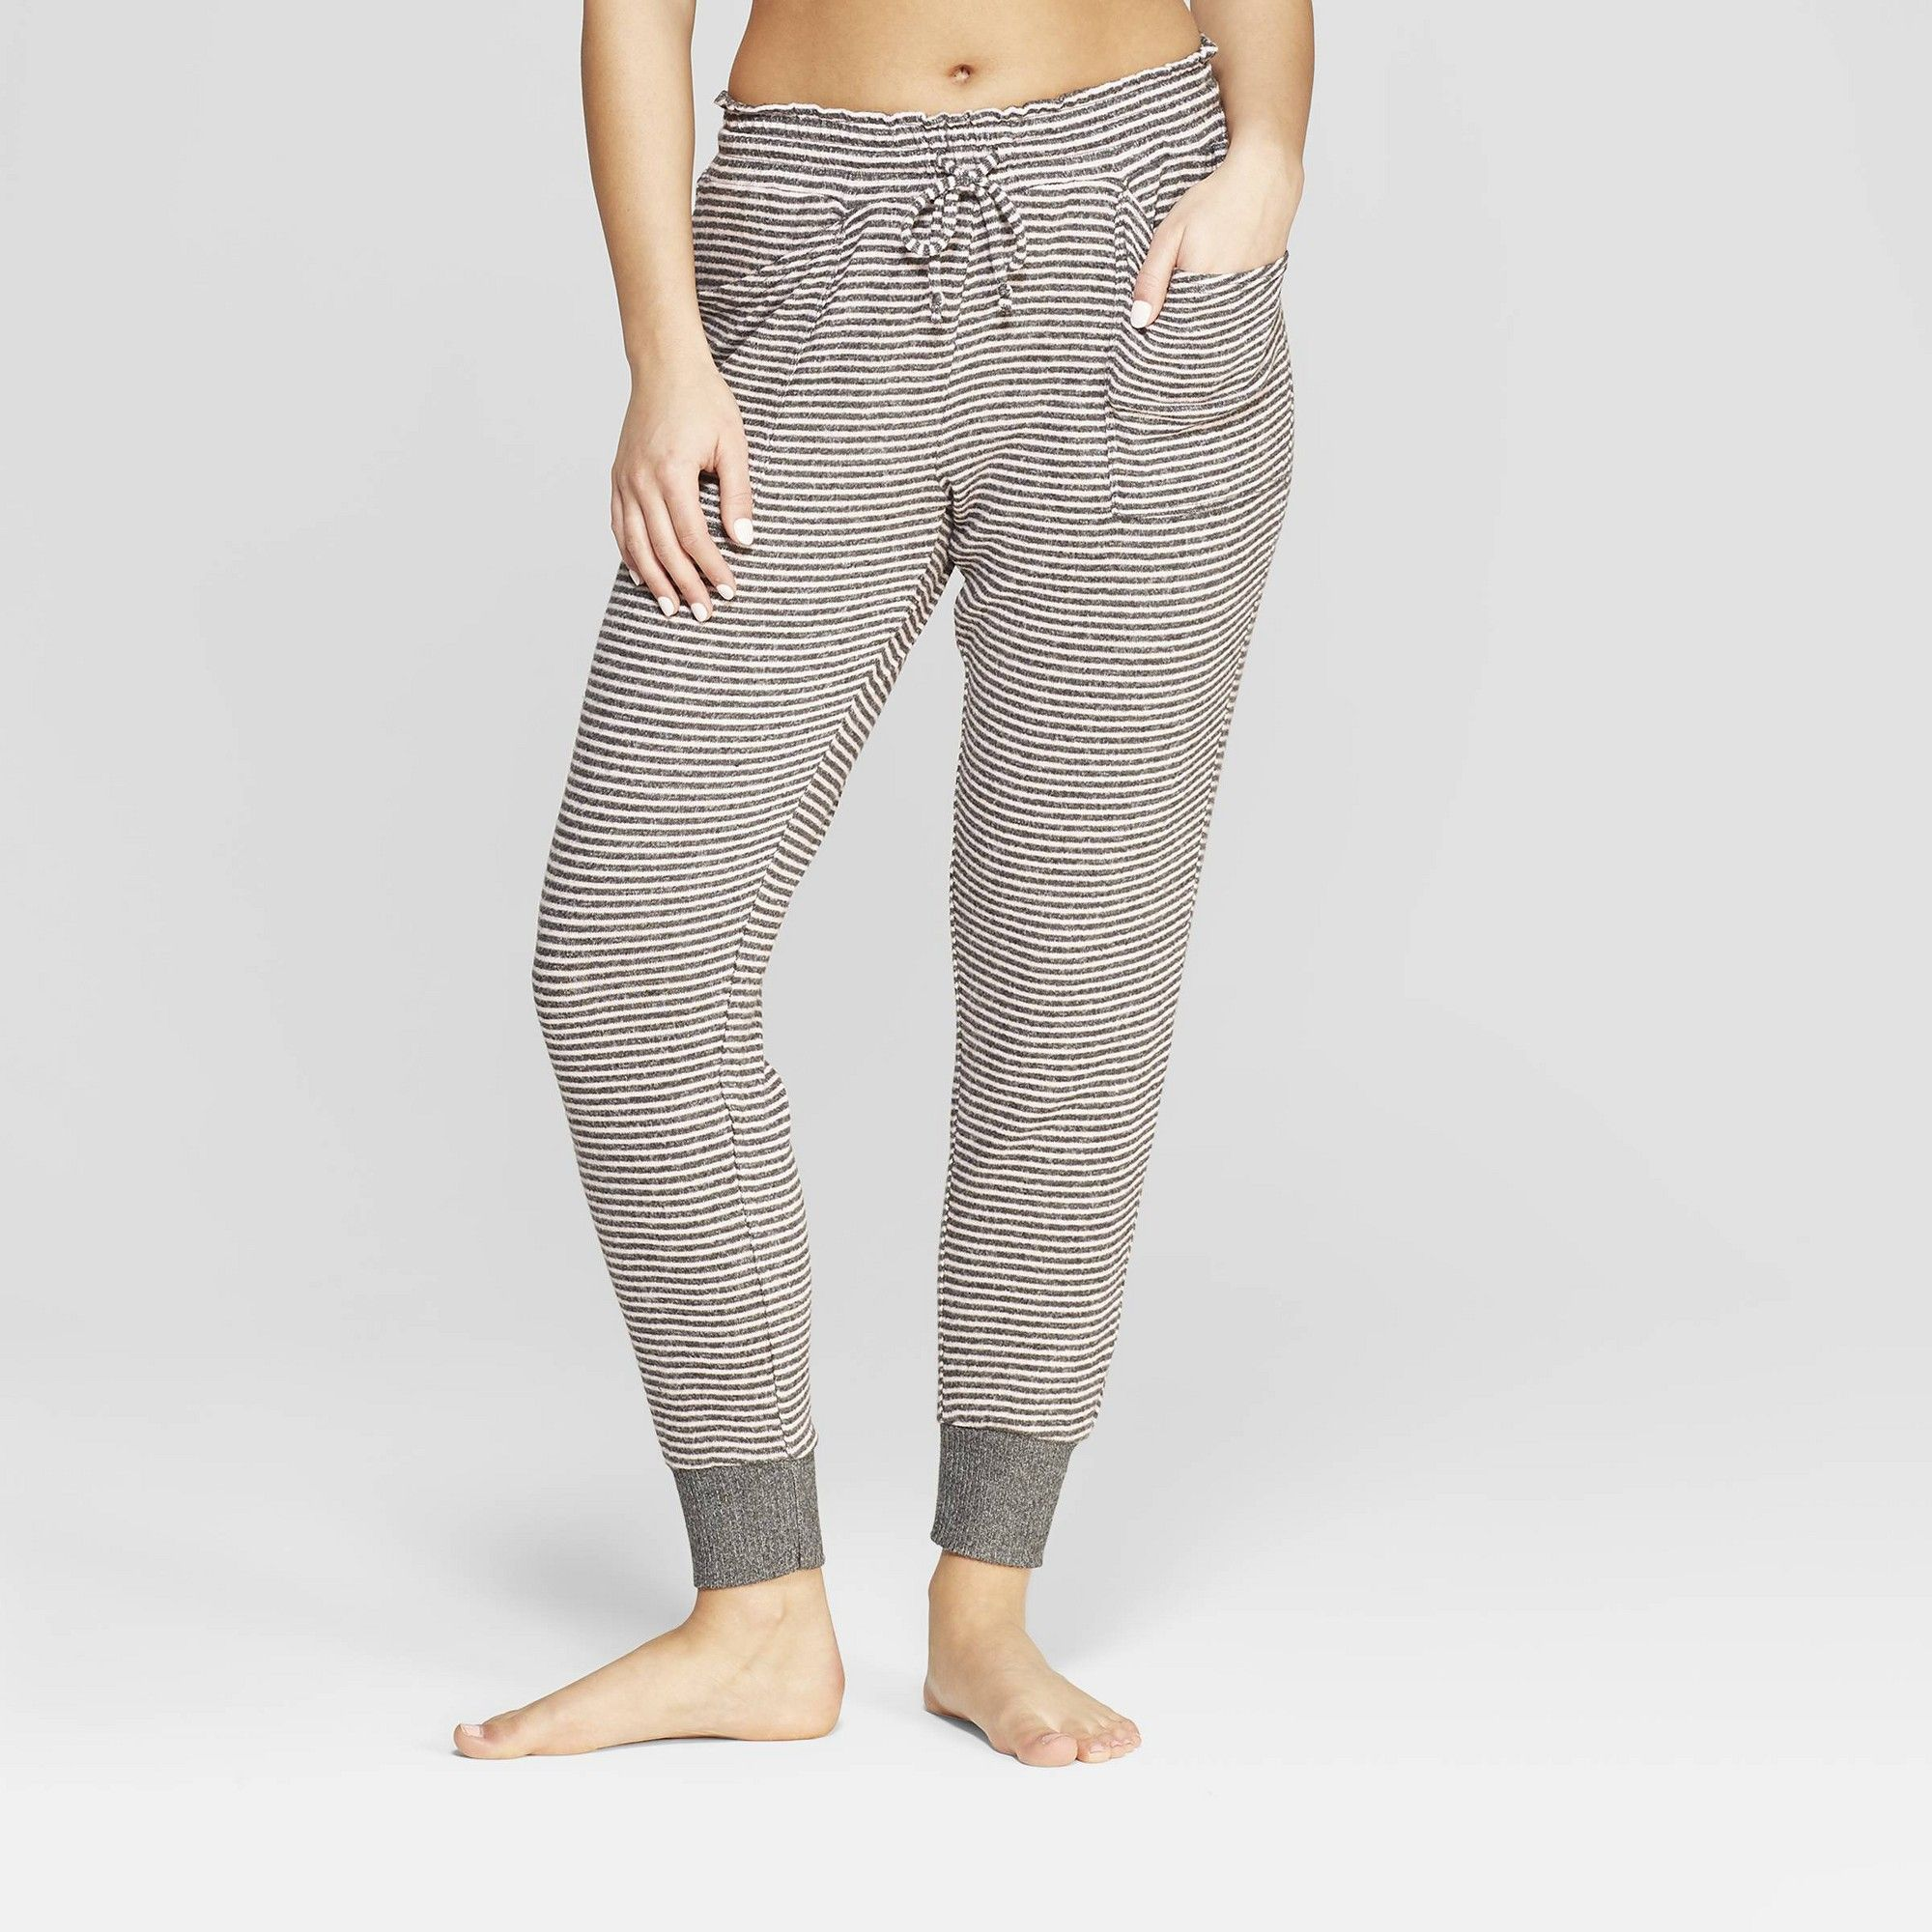 85cfc6abacf35e Women's Striped Perfectly Cozy Lounge Jogger Pants - Stars Above Gray S,  Pink